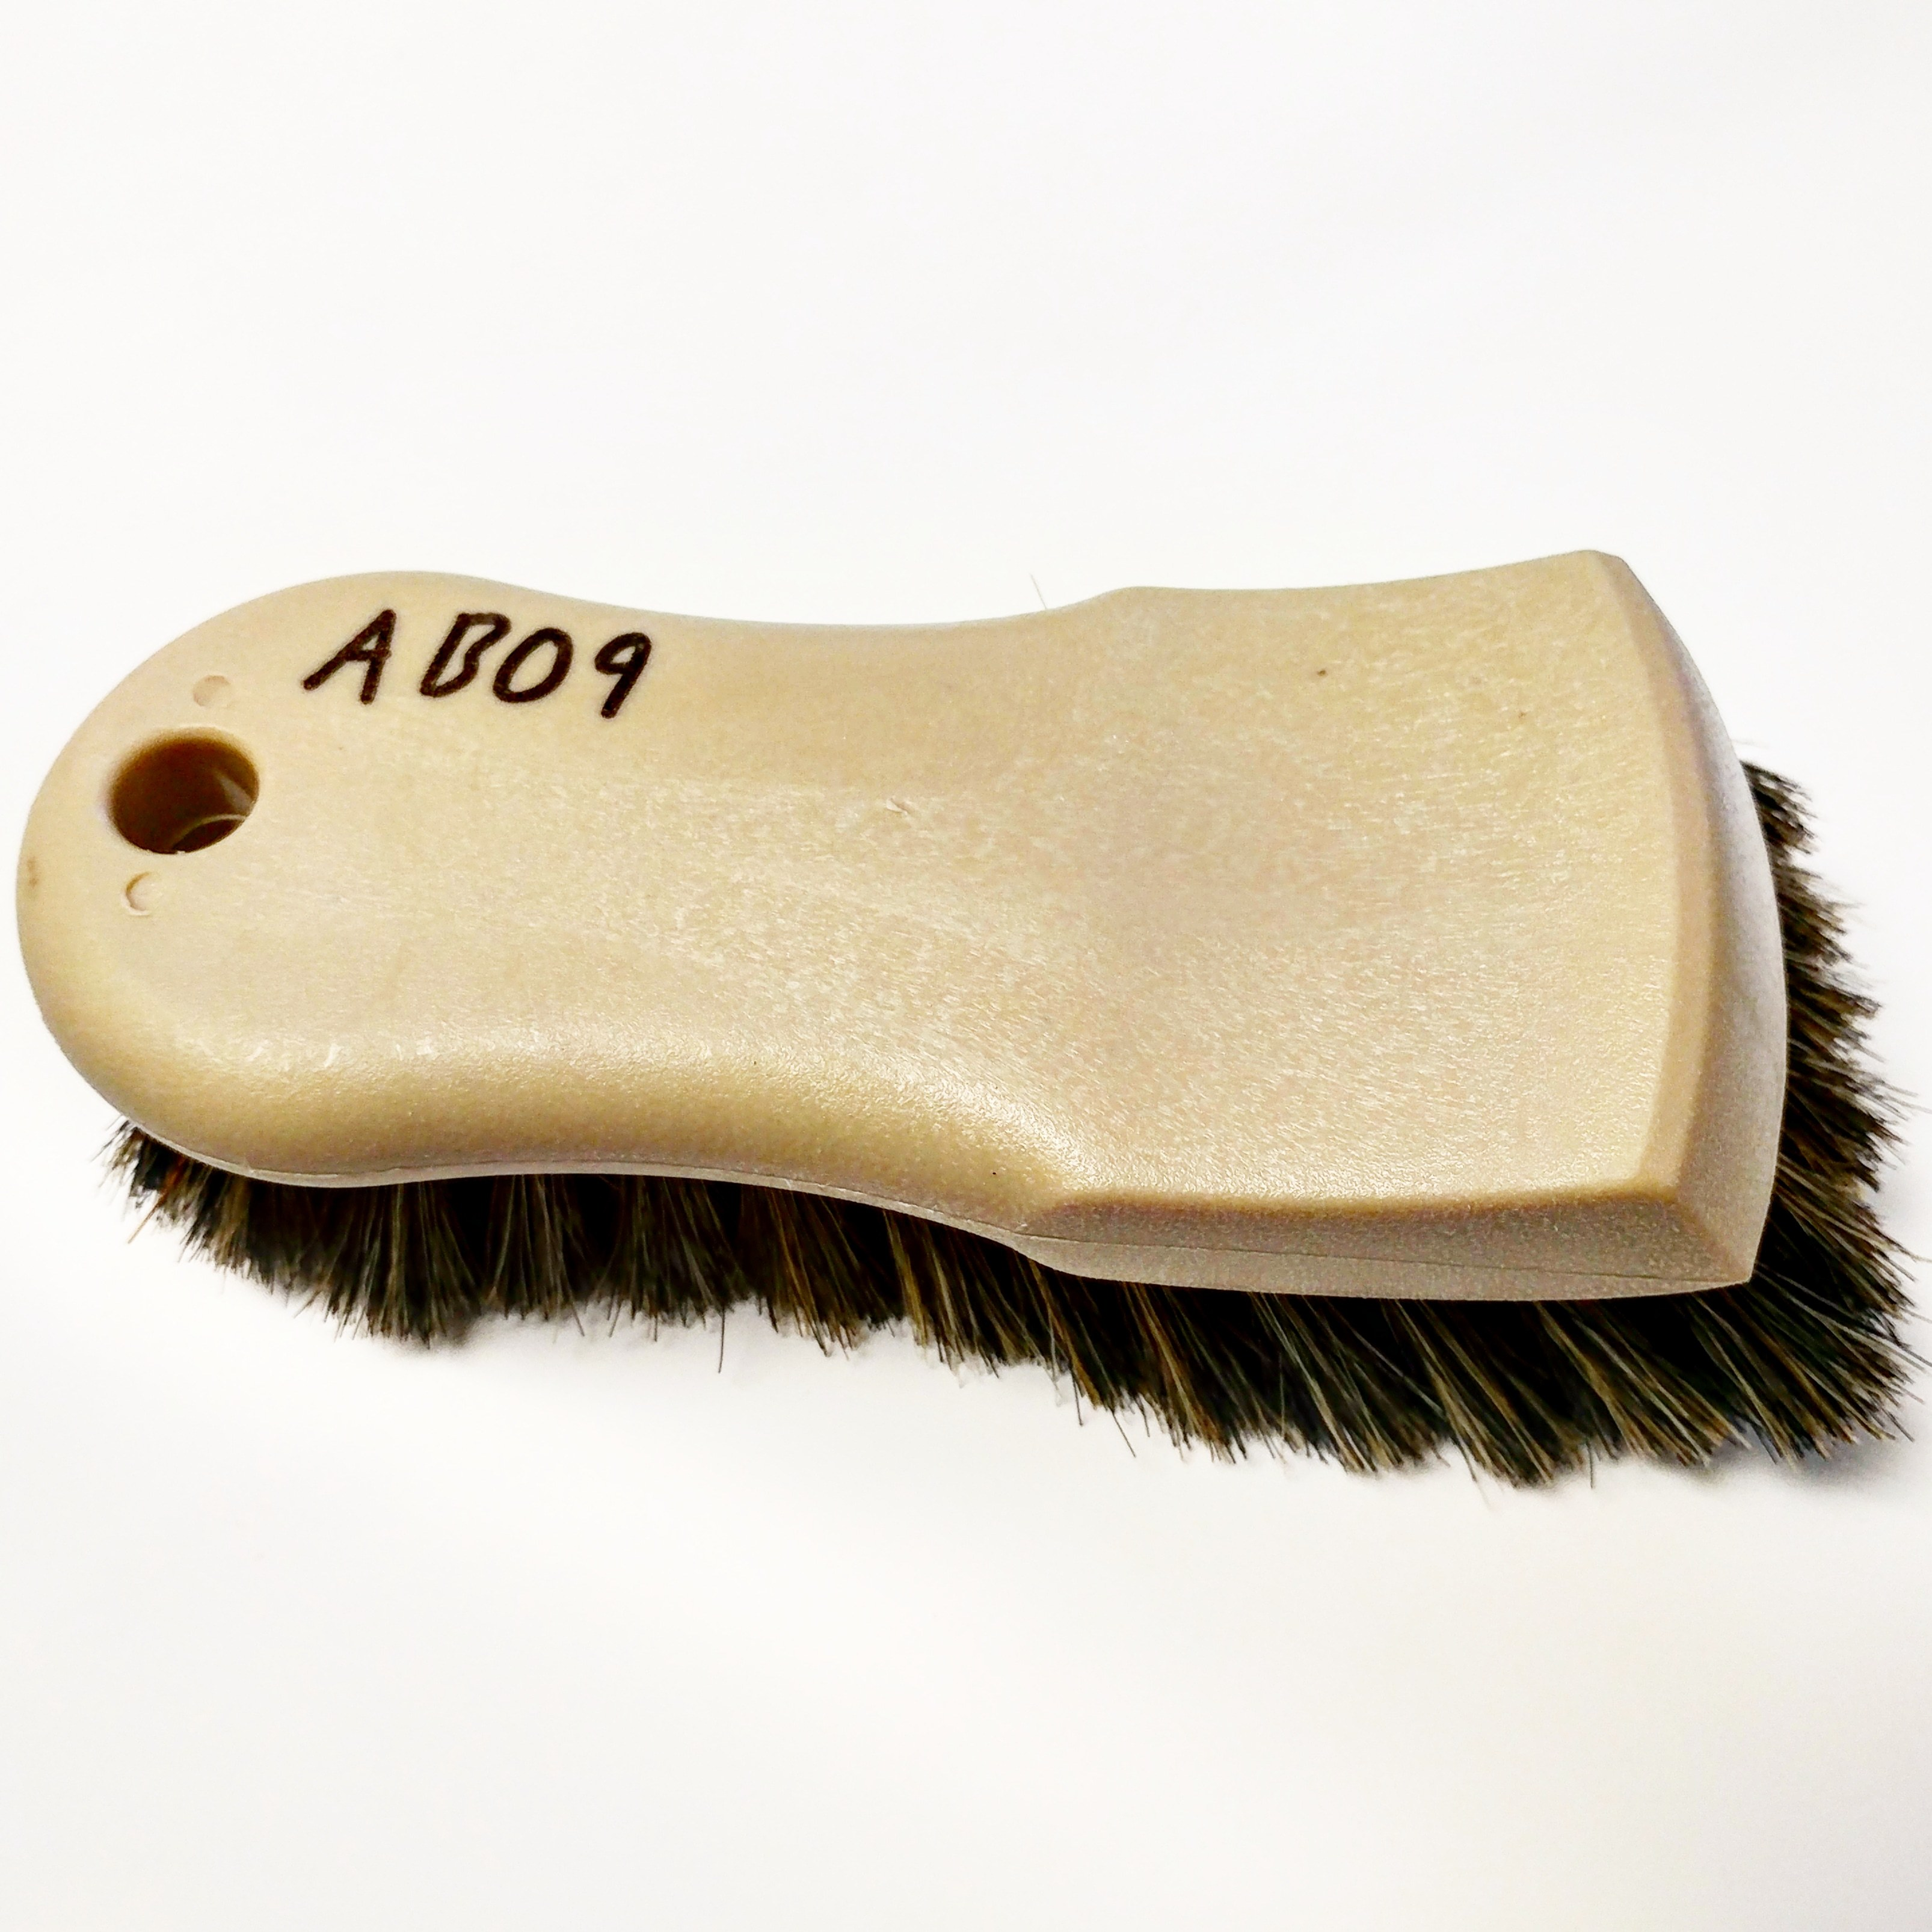 Horsehair Brush, Hand Fit